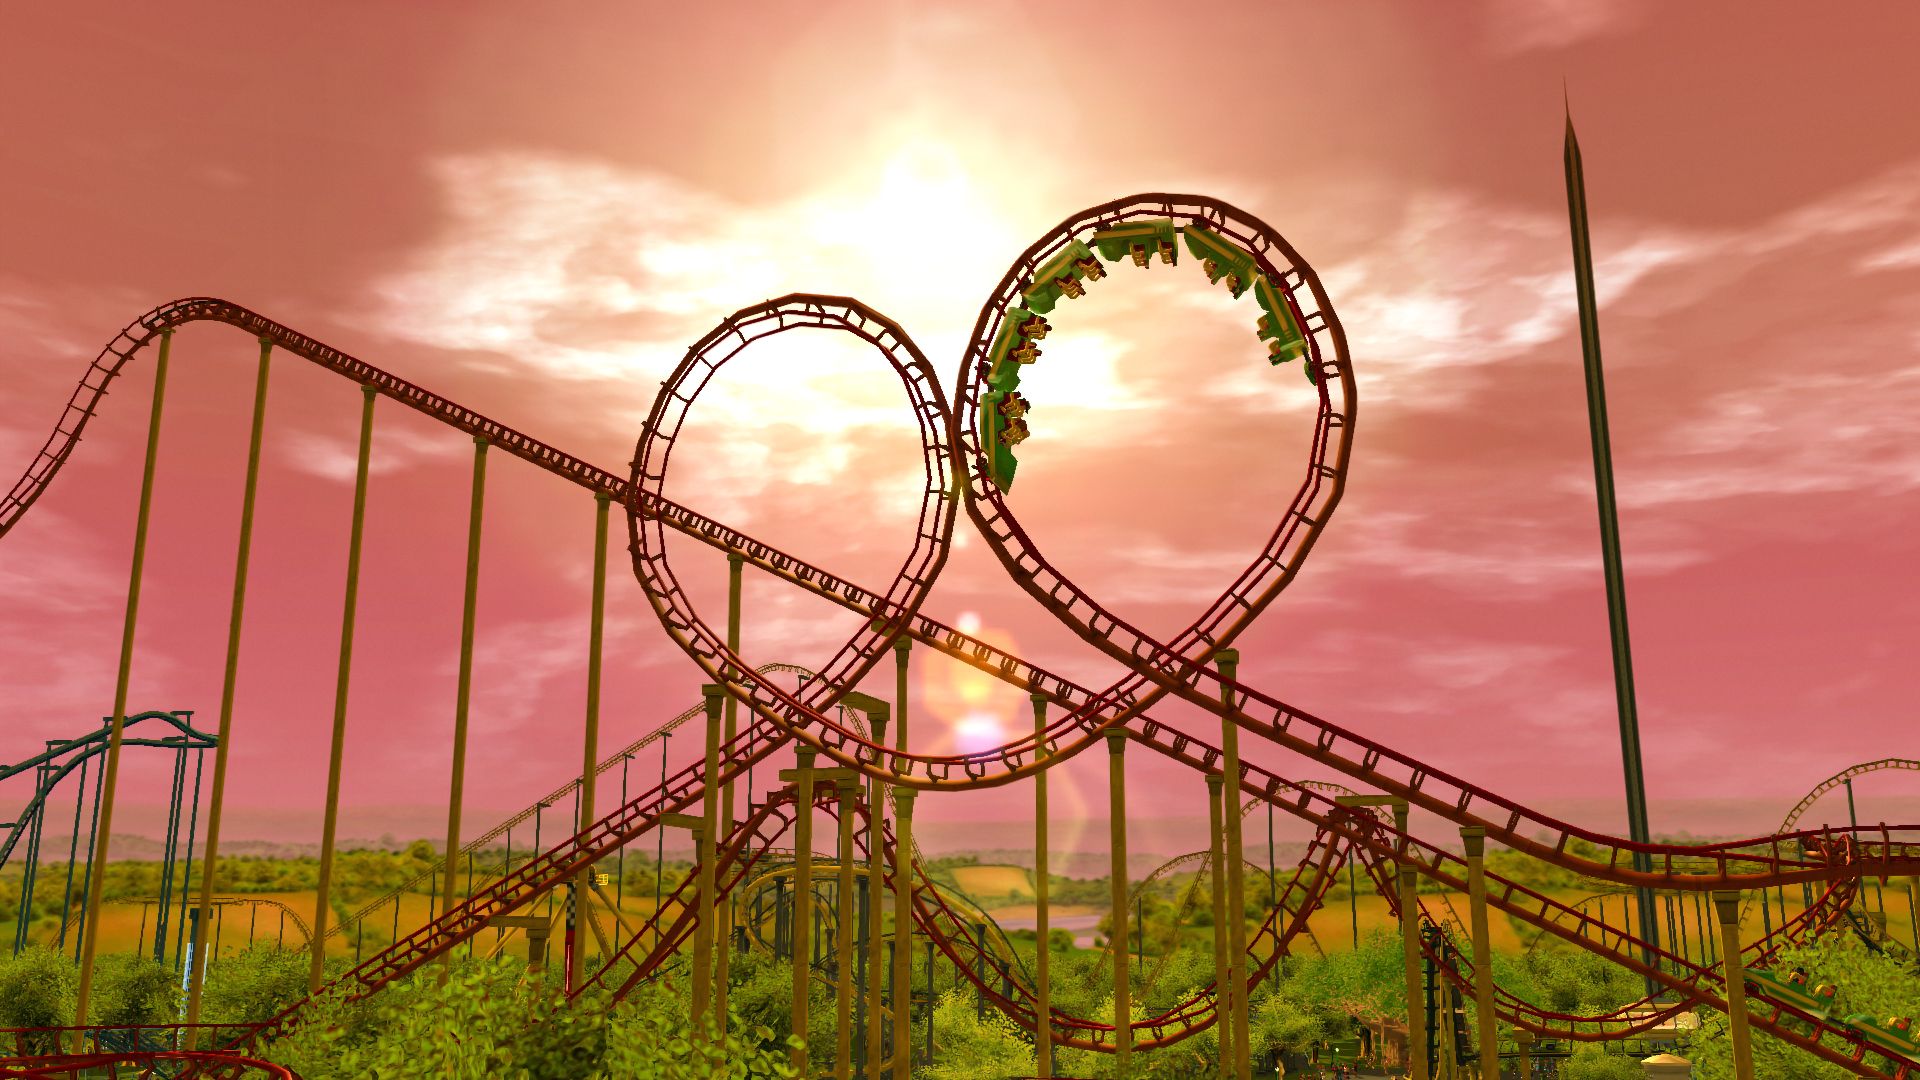 RollerCoaster-Tycoon-3-Complete-Edition-brings-the-fun-this-September-24-1.jpg